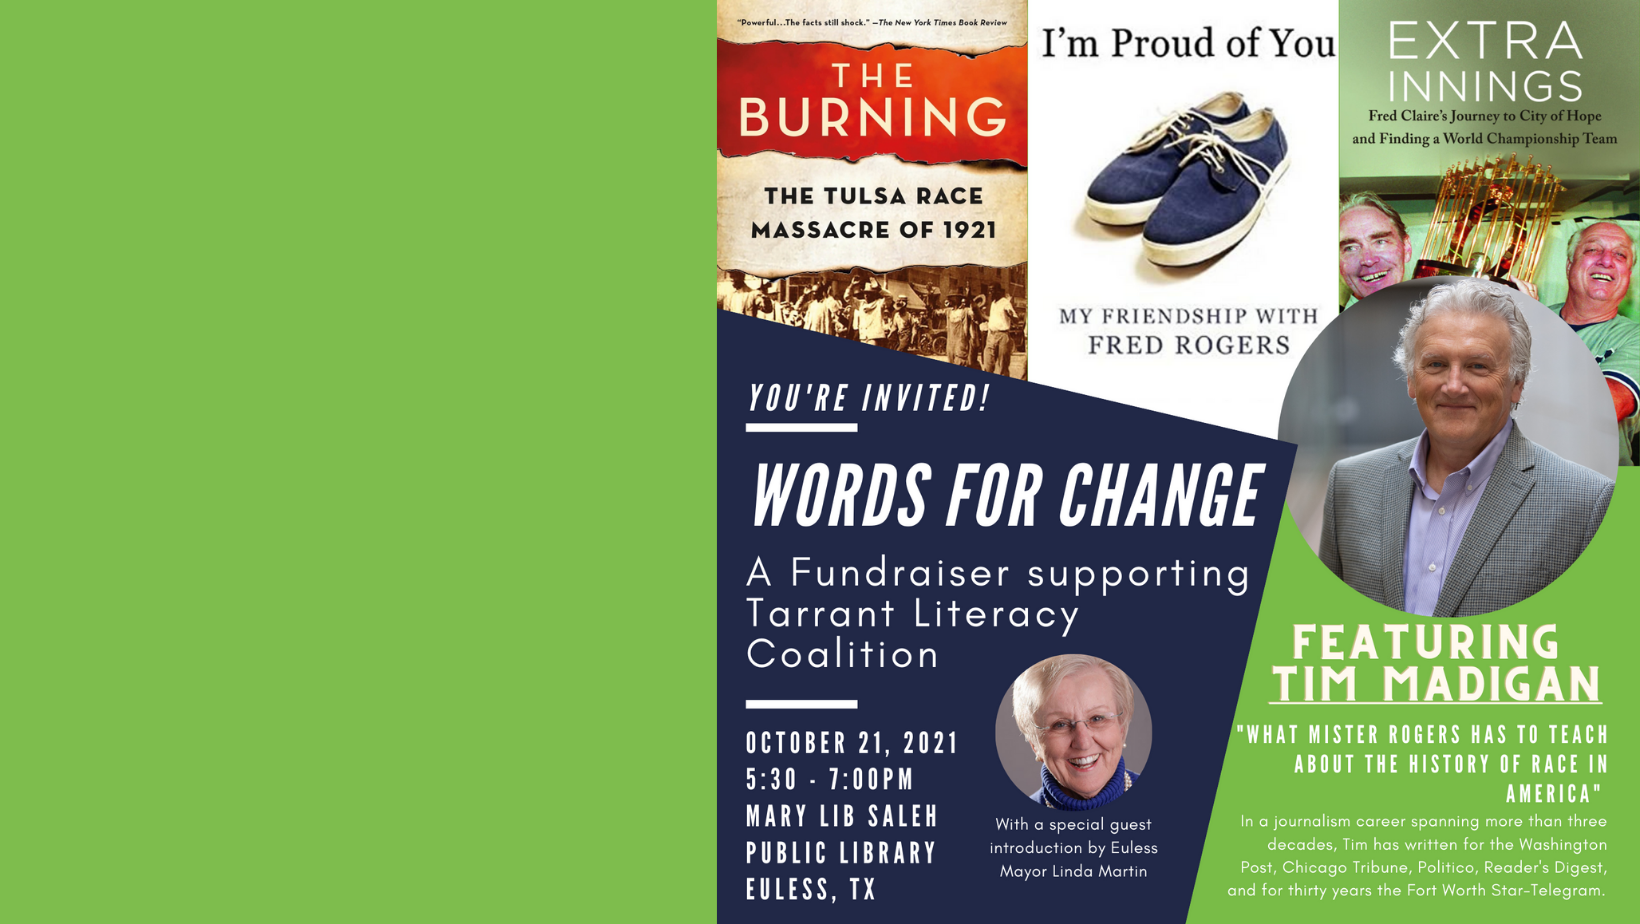 Words for Change | Fundraiser Supporting Tarrant Literacy Coalition